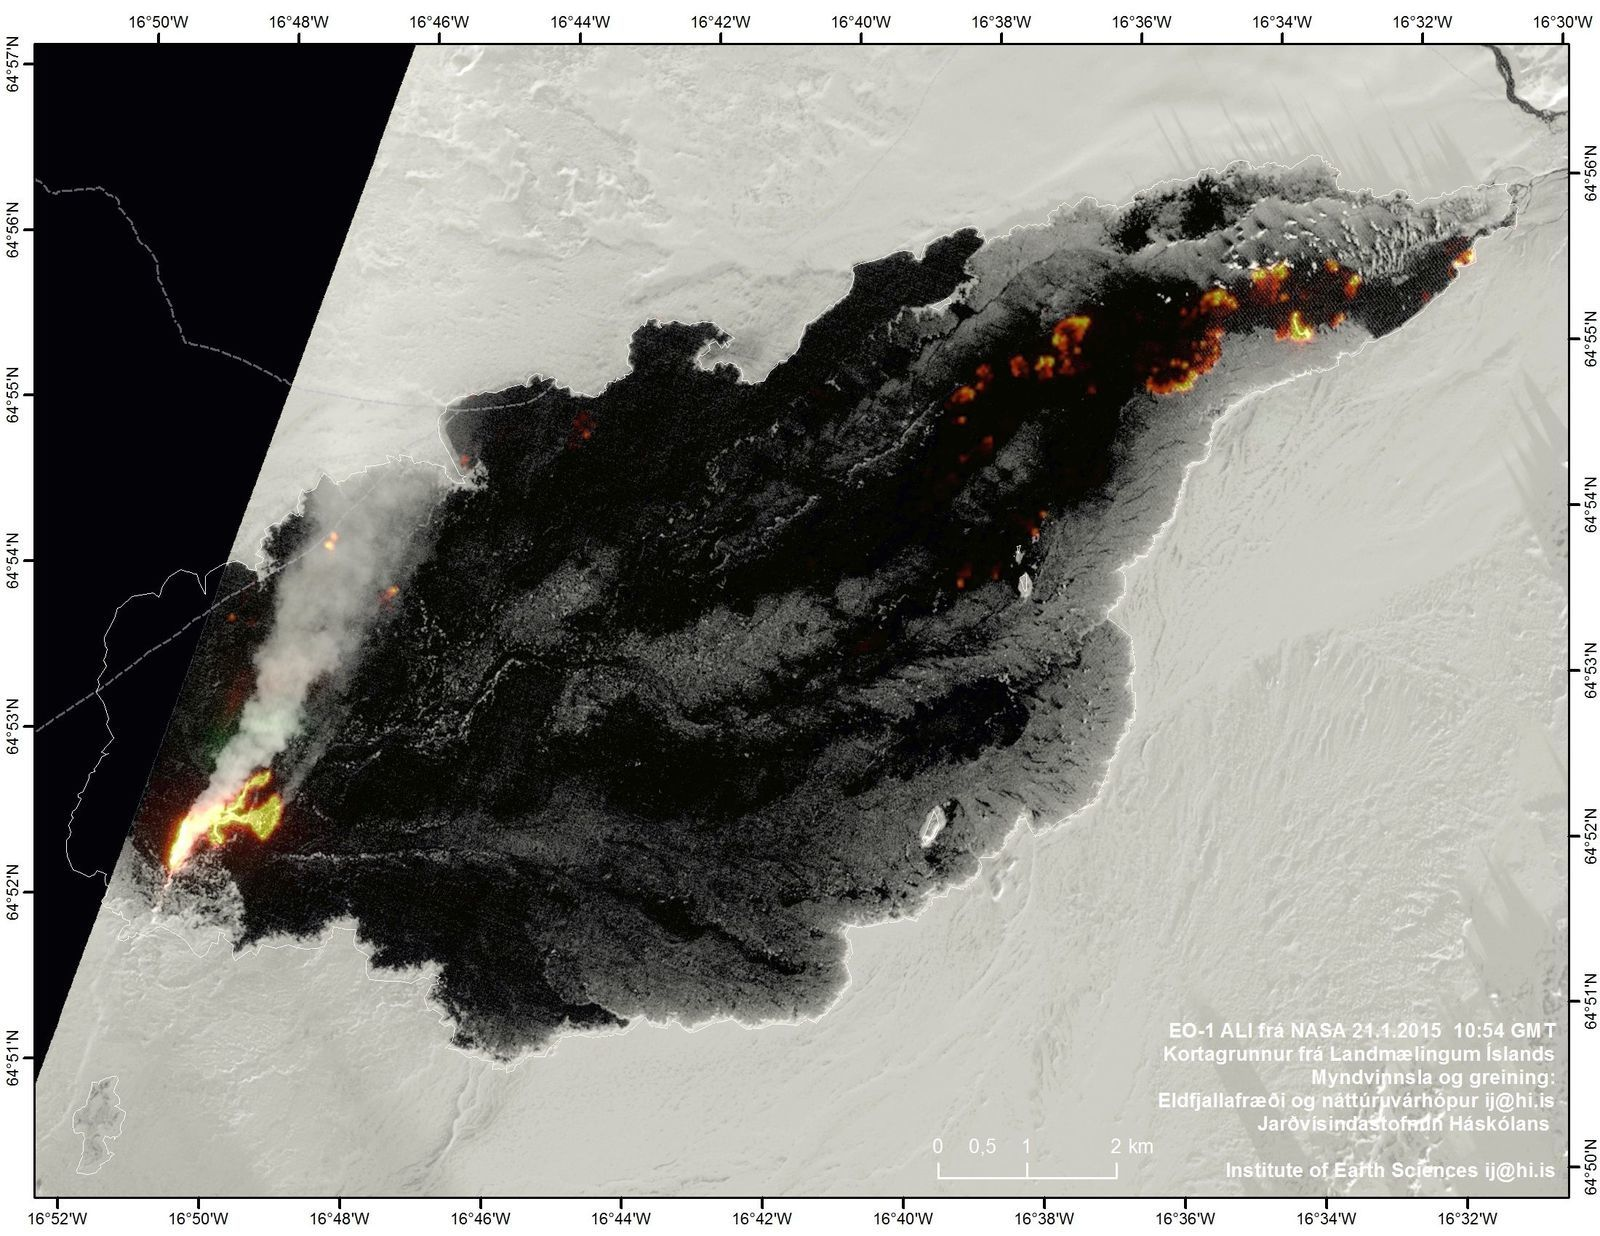 Le champ de lave d'Holuhraun le 21.01.2015 - photo Nasa EO-1